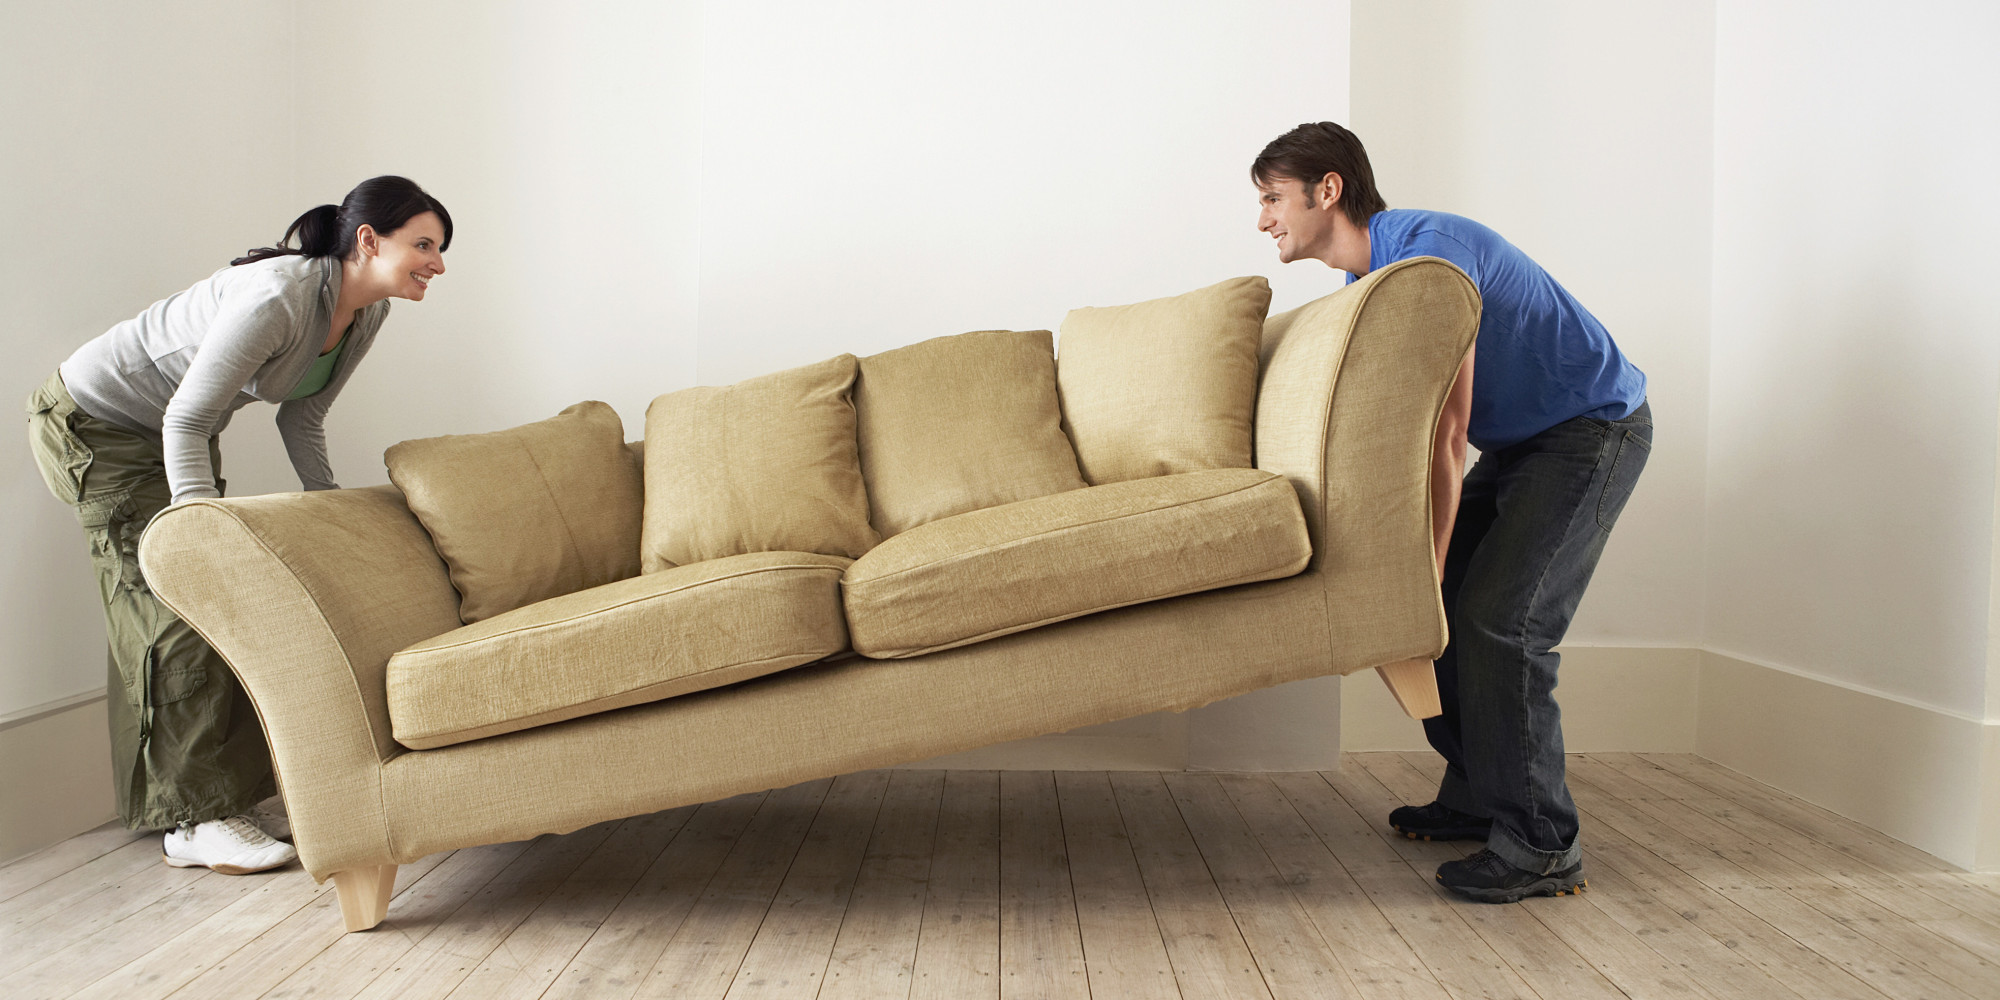 Captivating 6 Mistakes People Make When Buying Furniture